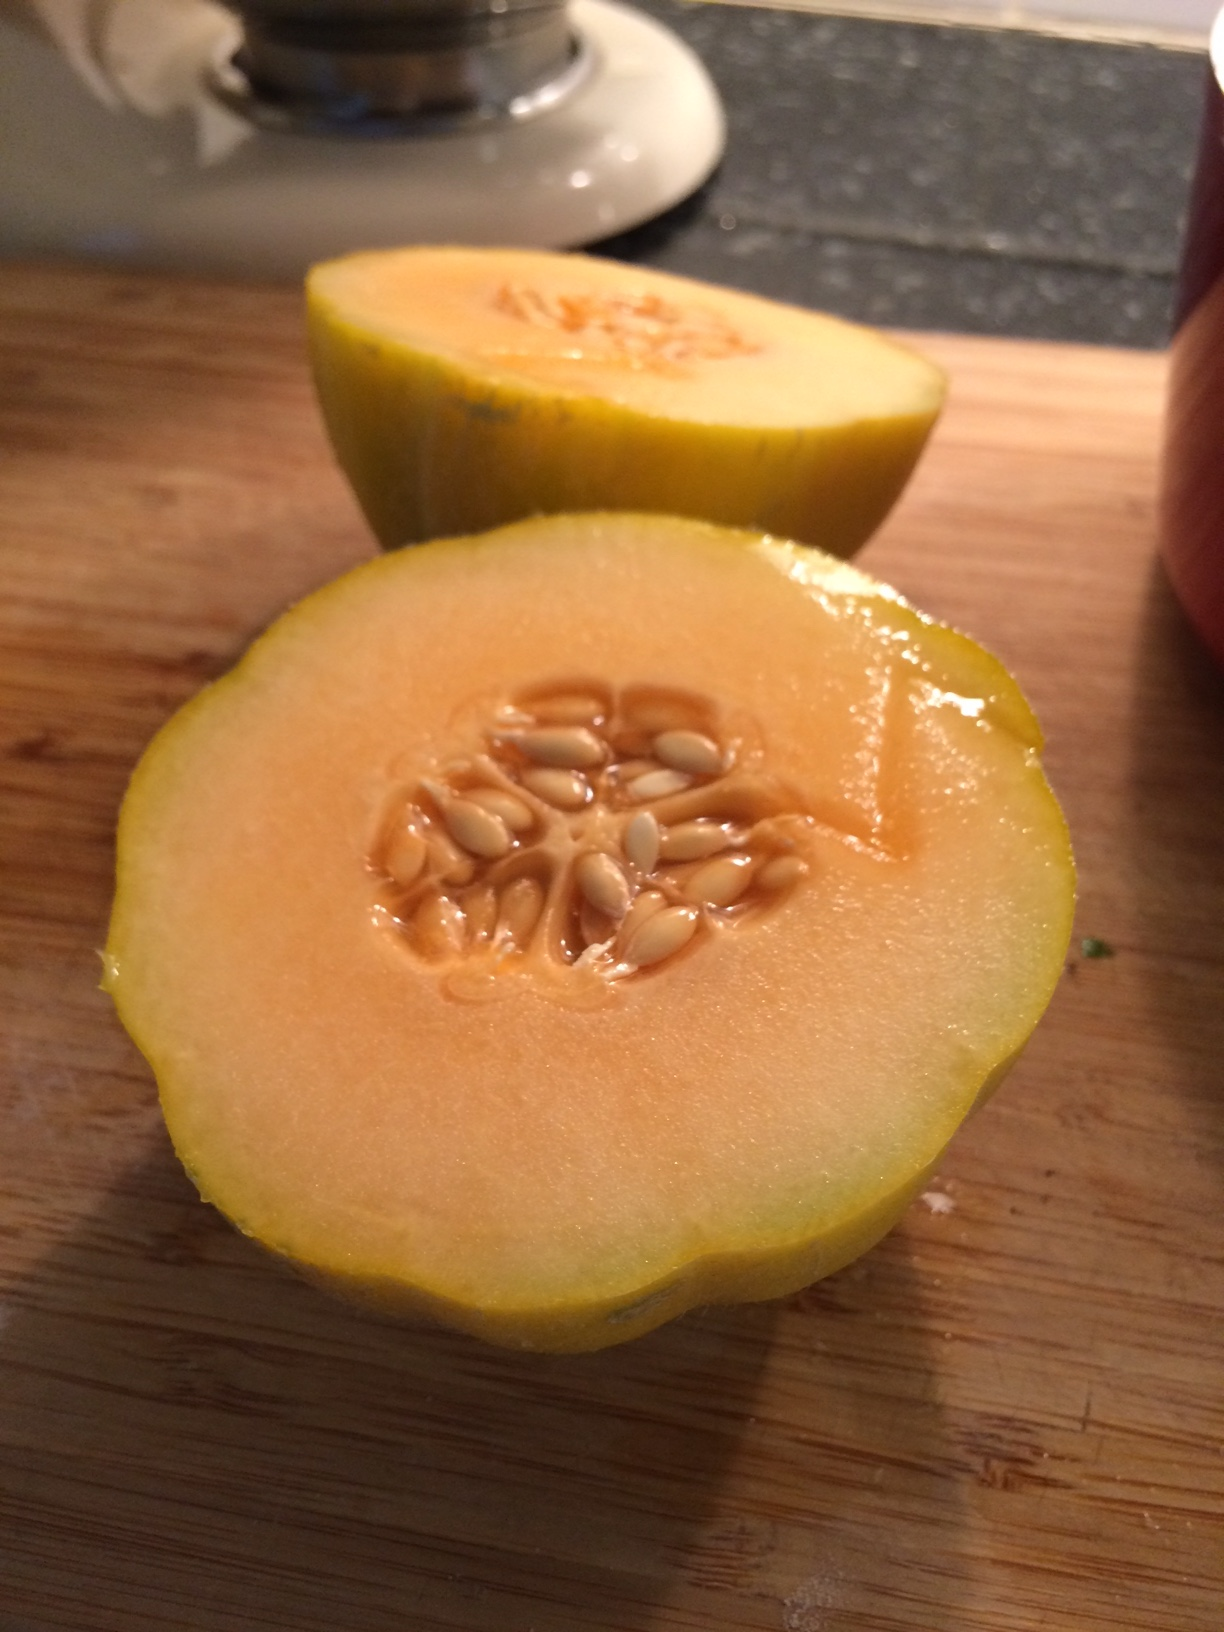 cantaloupe cut in half